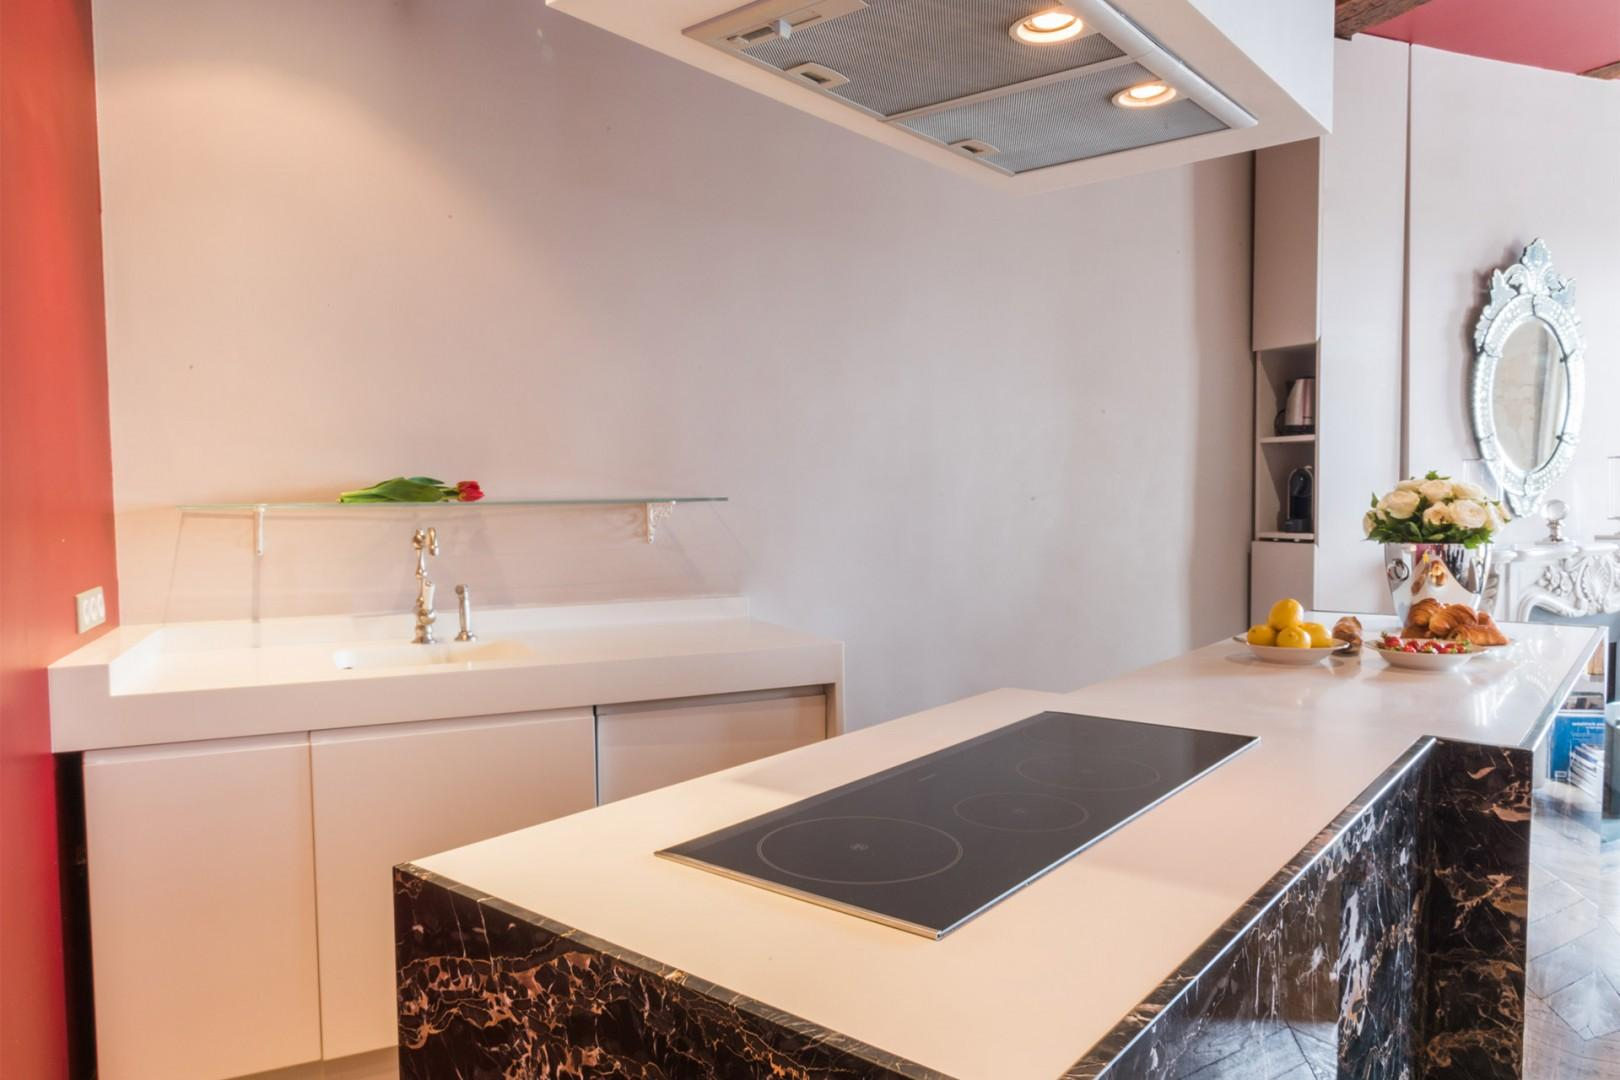 The kitchen is fully equipped with everything you need.